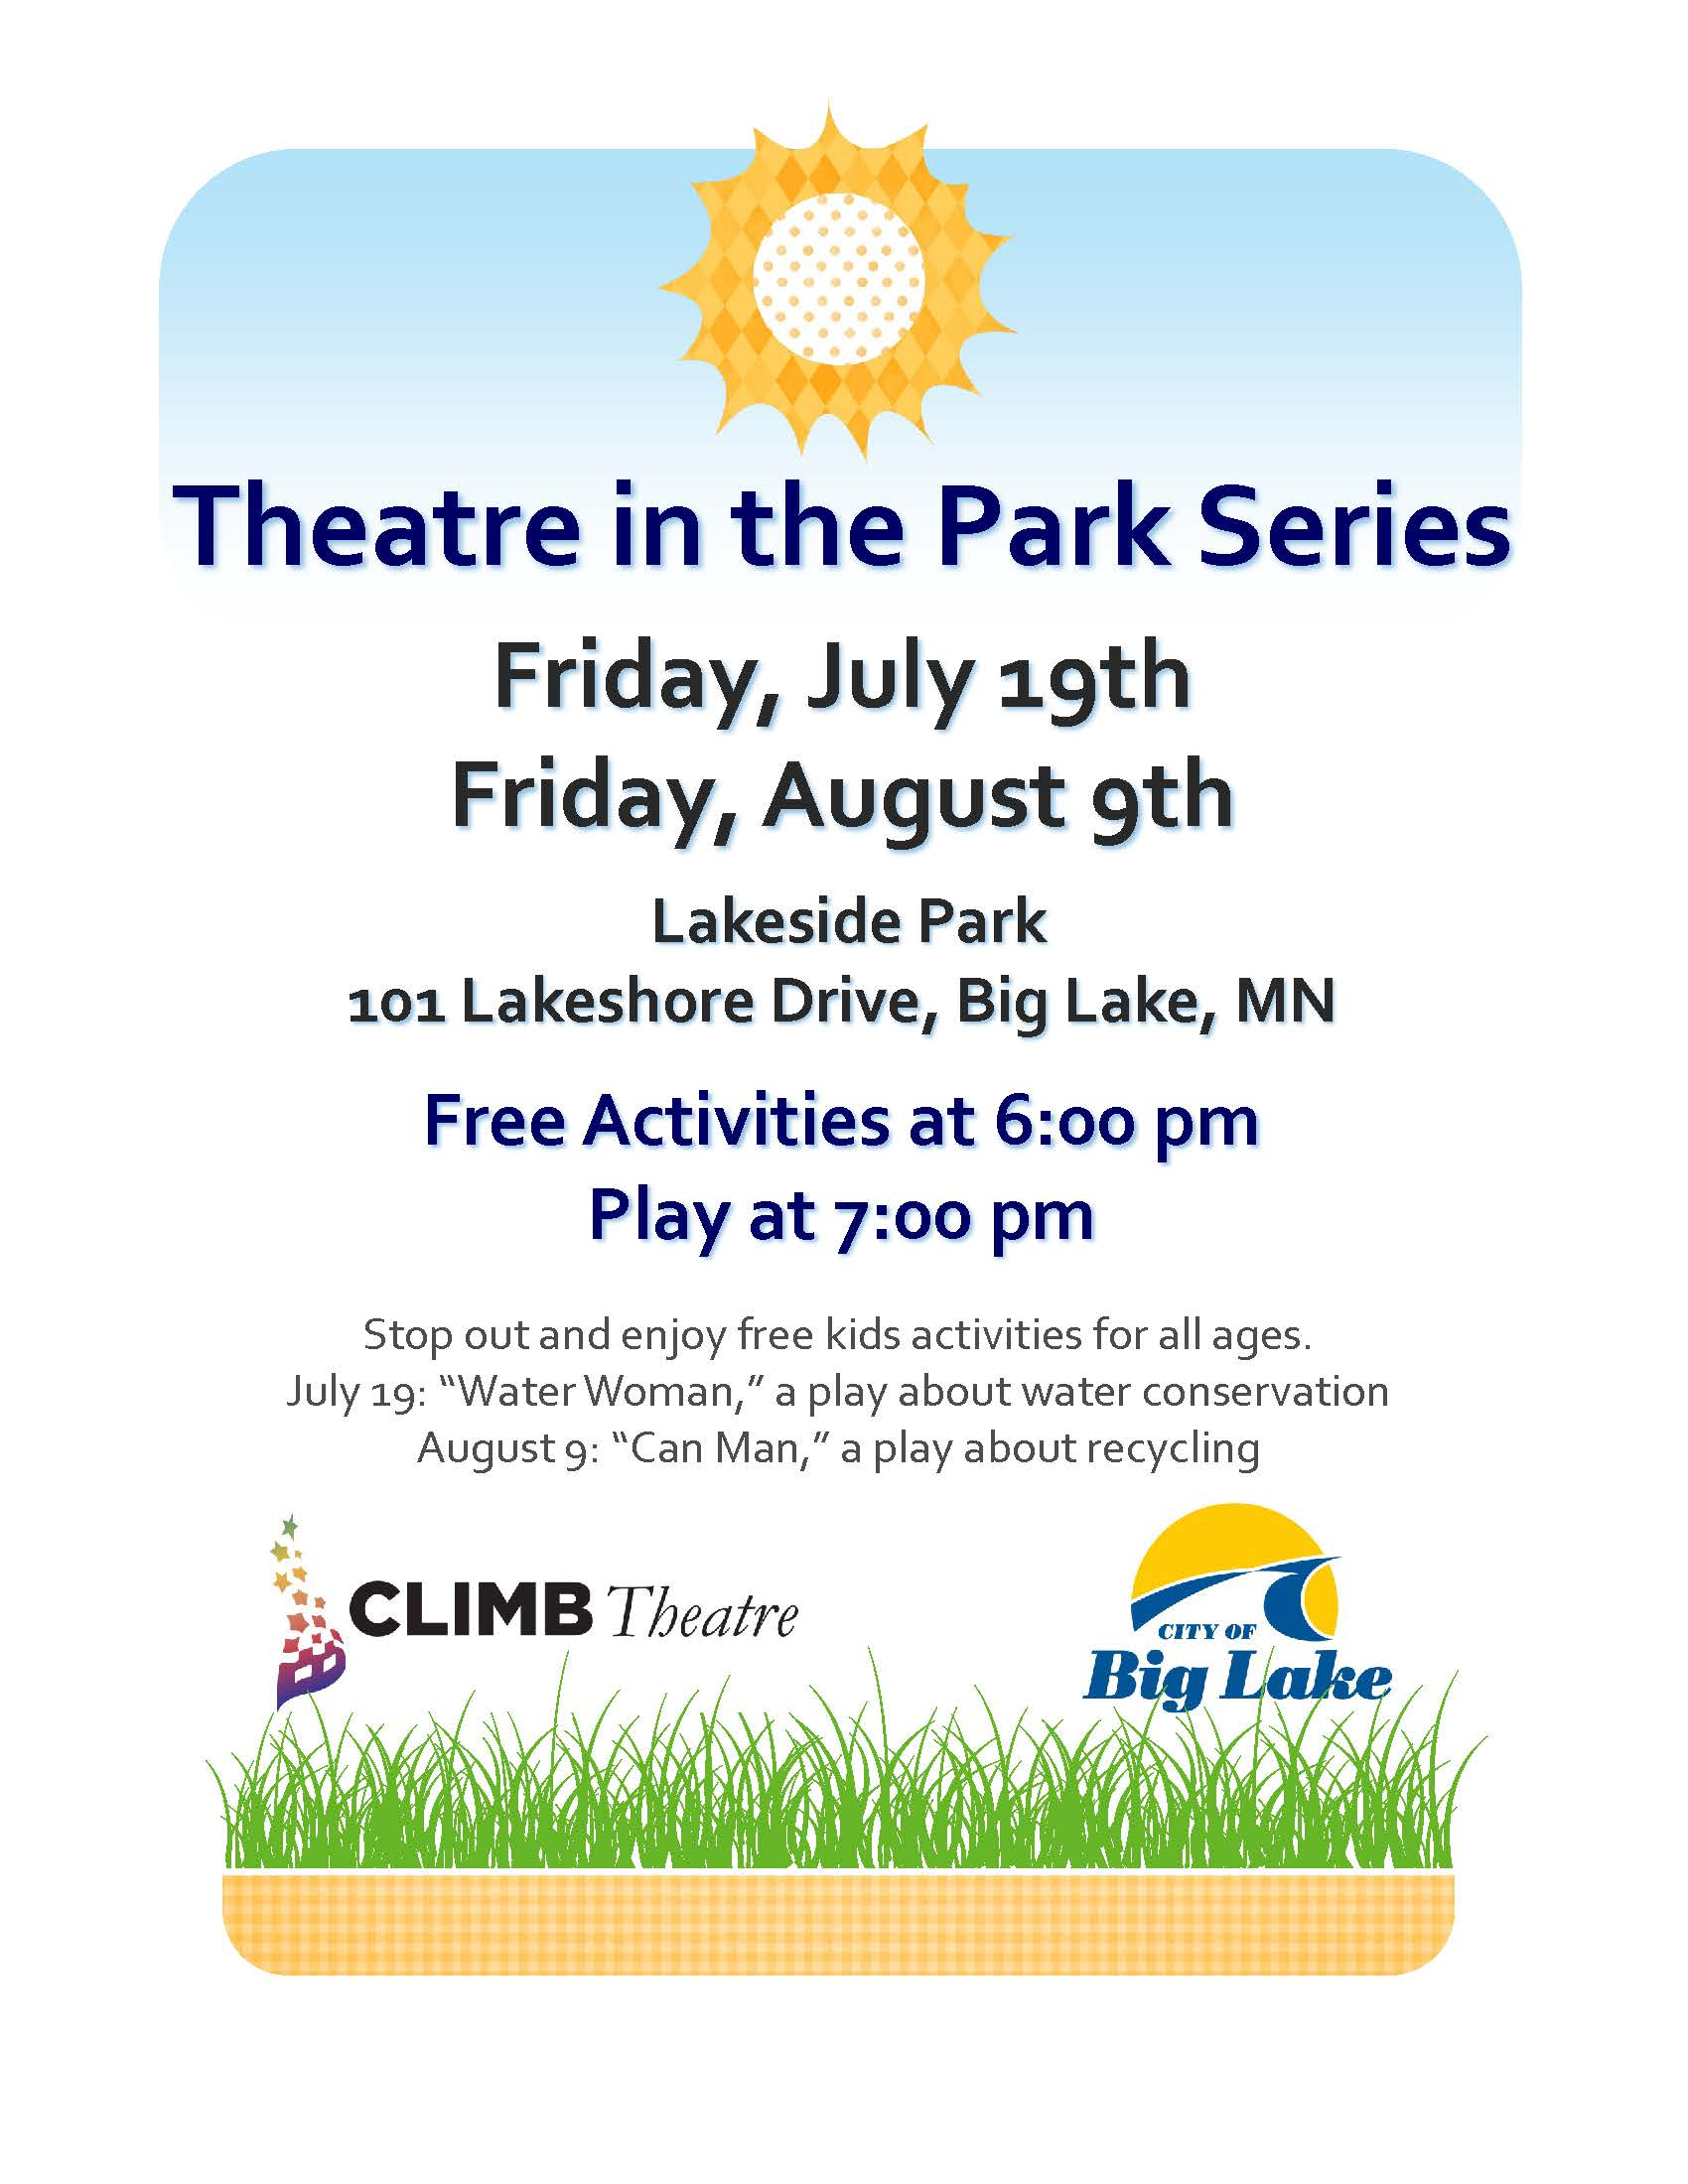 Theatre in the Park Series 2019